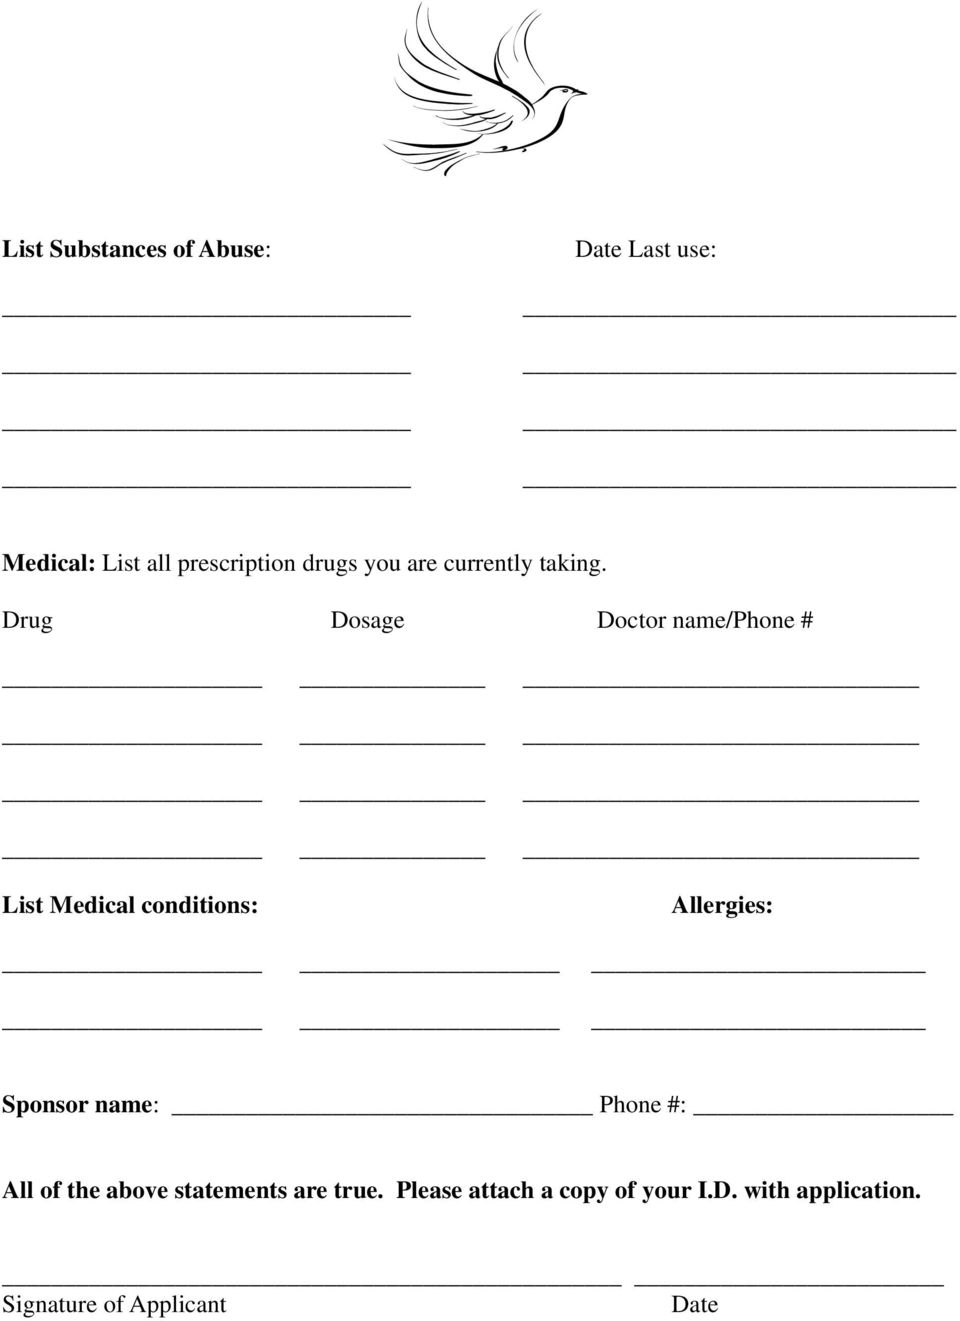 Drug Dosage Doctor name/phone # List Medical conditions: Allergies: Sponsor